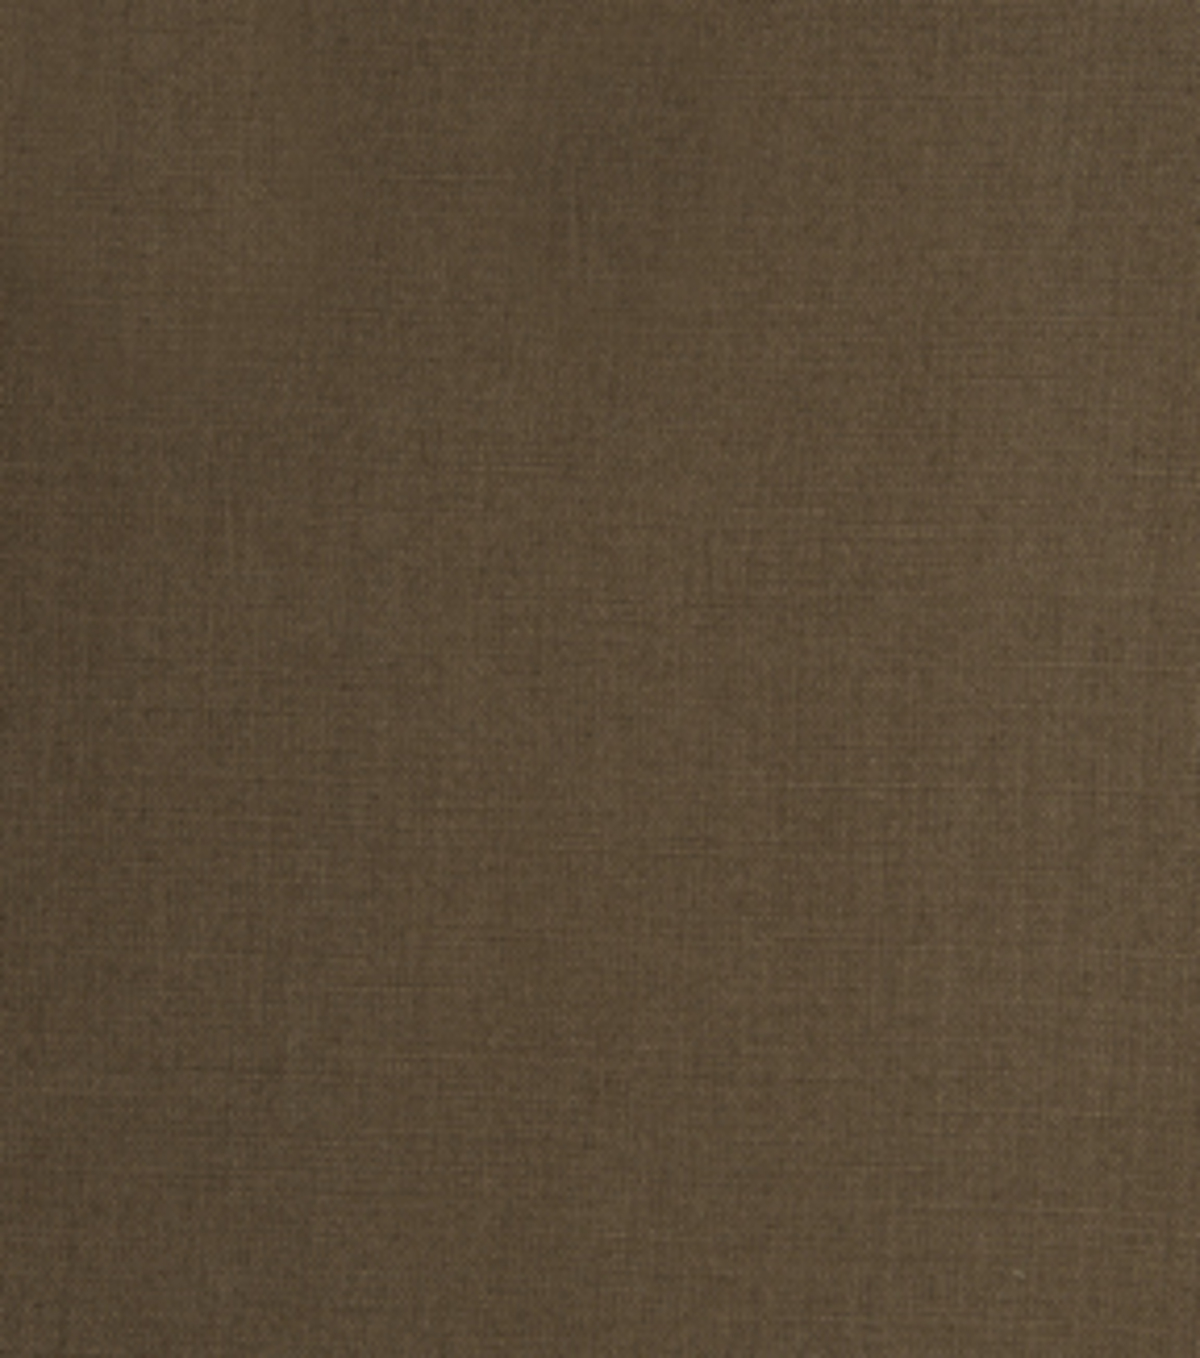 Home Decor 8\u0022x8\u0022 Fabric Swatch-Signature Series Sigourney Coffee